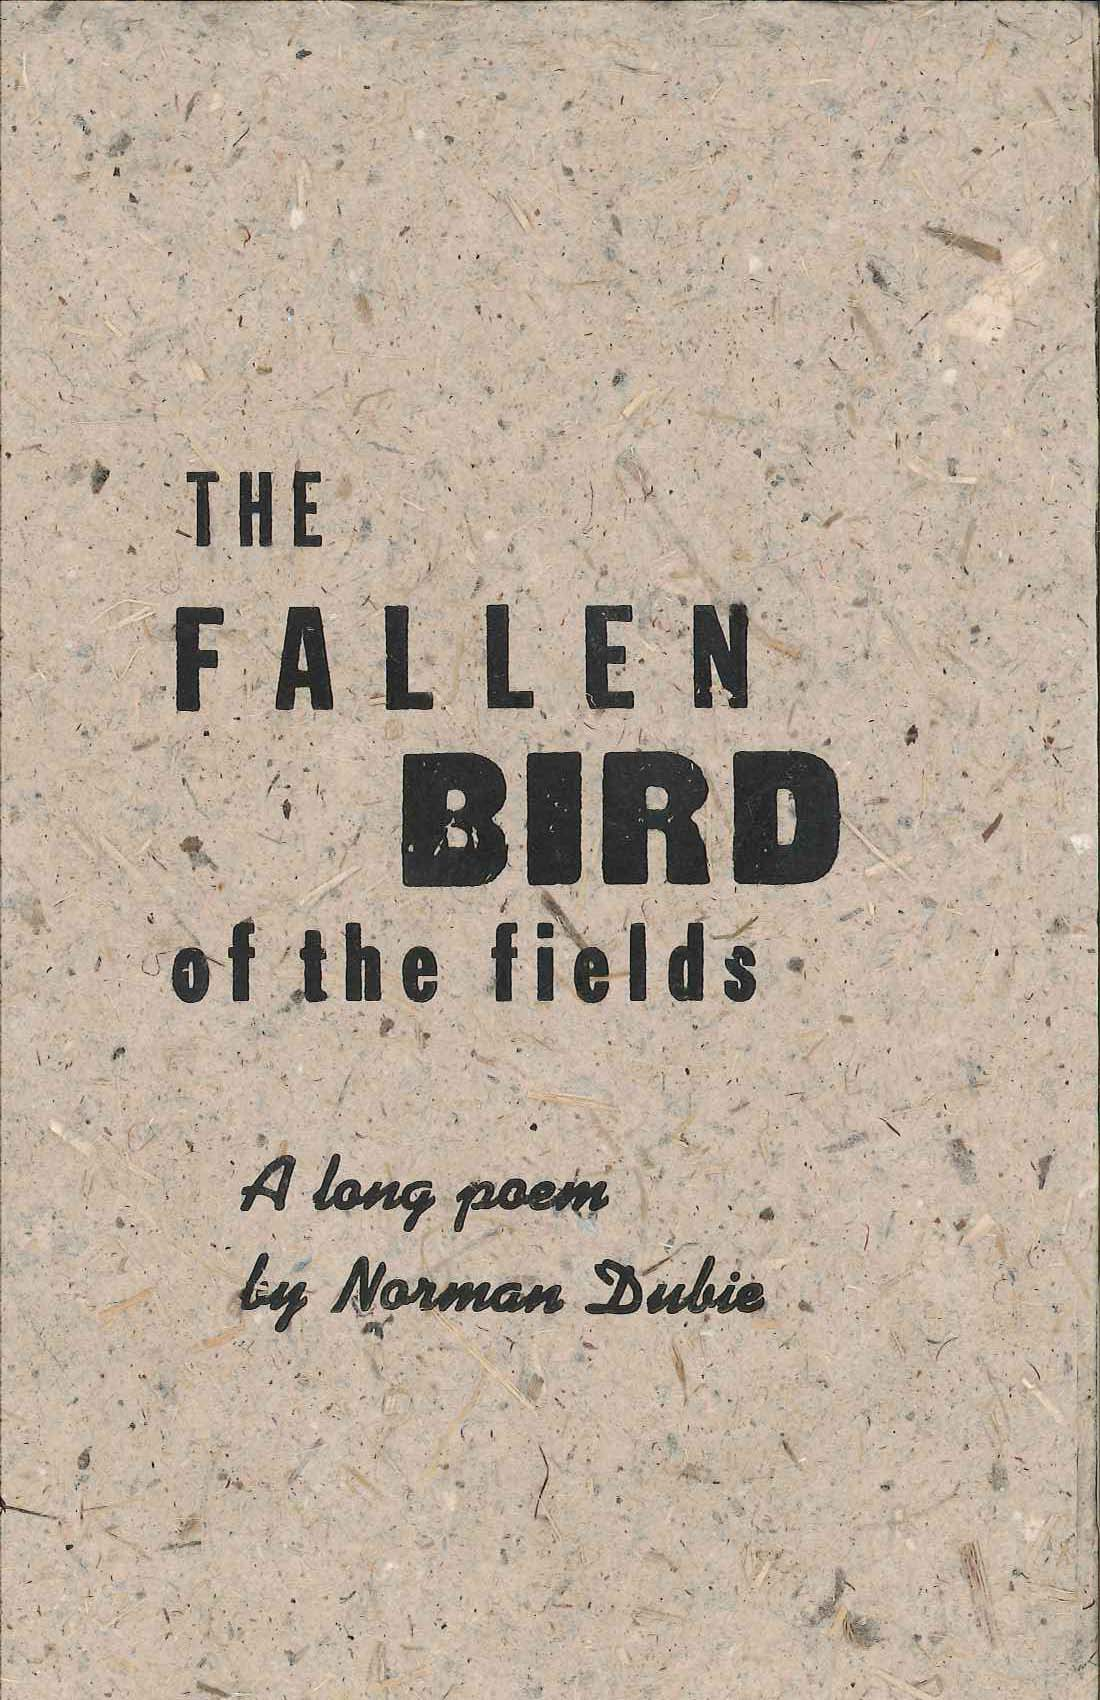 The Fallen Bird of the Fields by Norman Dubie